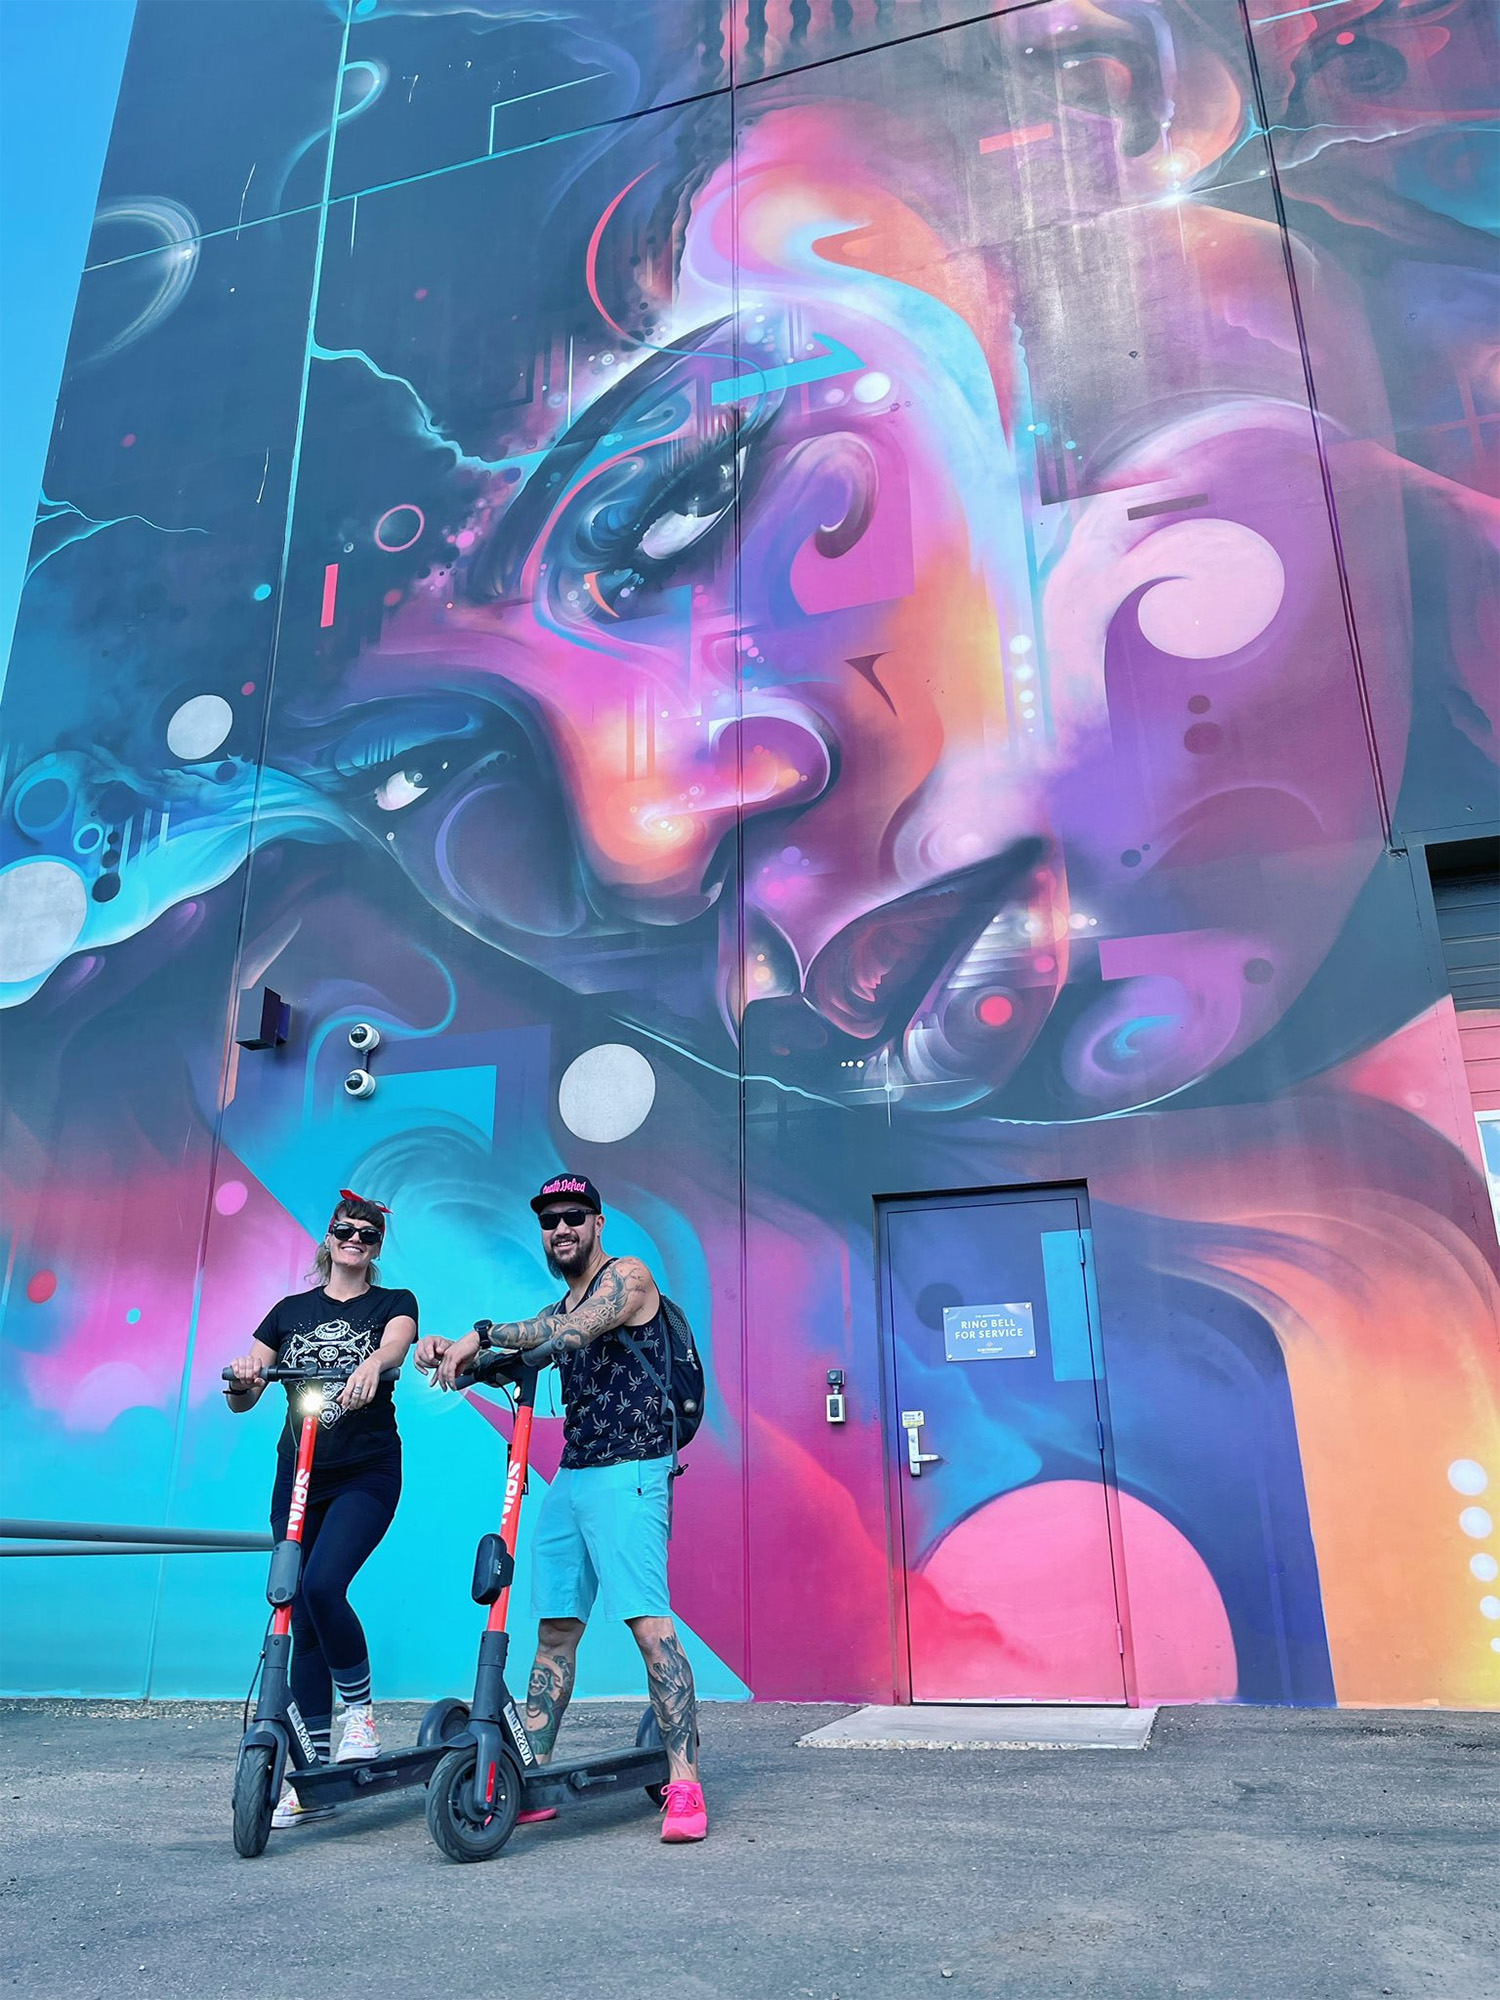 Instagrammable Walls of Edmonton - Explore Edmonton - Murals - Walls - Whyte Ave Old Strathcona - Blind Enthusiasm The Monolith Art Mr Cenz